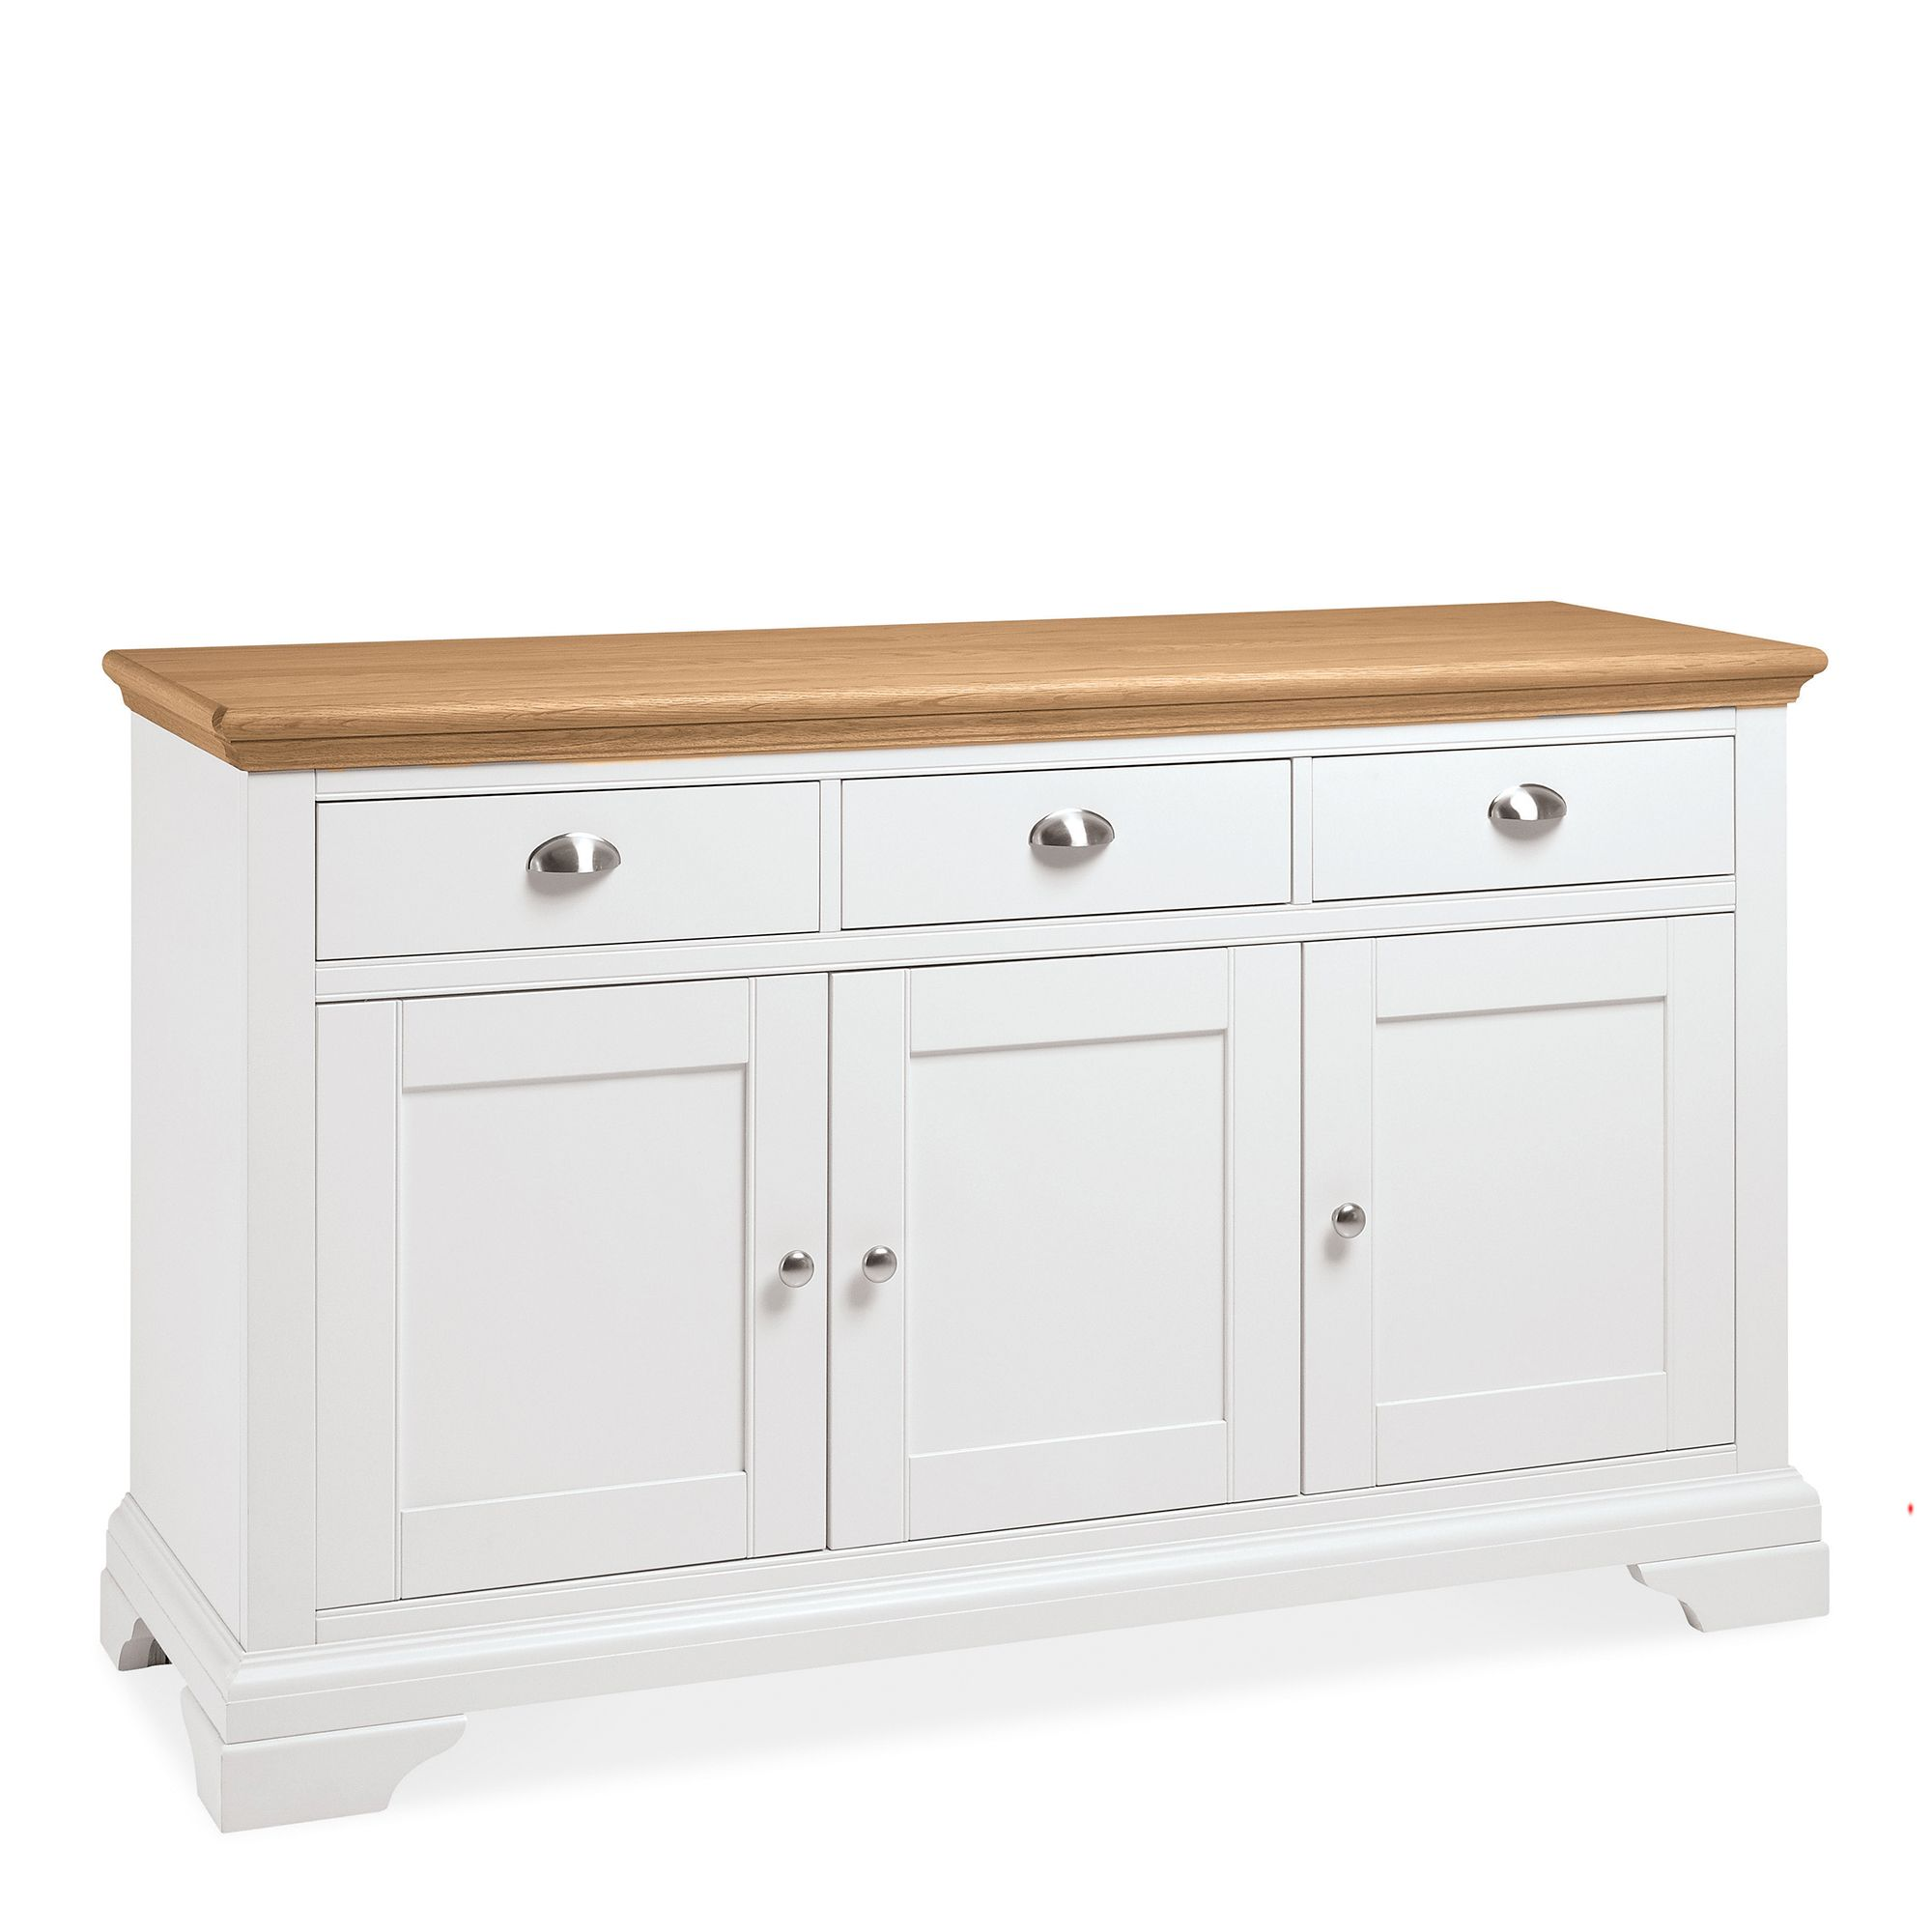 KYRA TWO TONE WIDE SIDEBOARD - L148cm x D48cm x H88cm